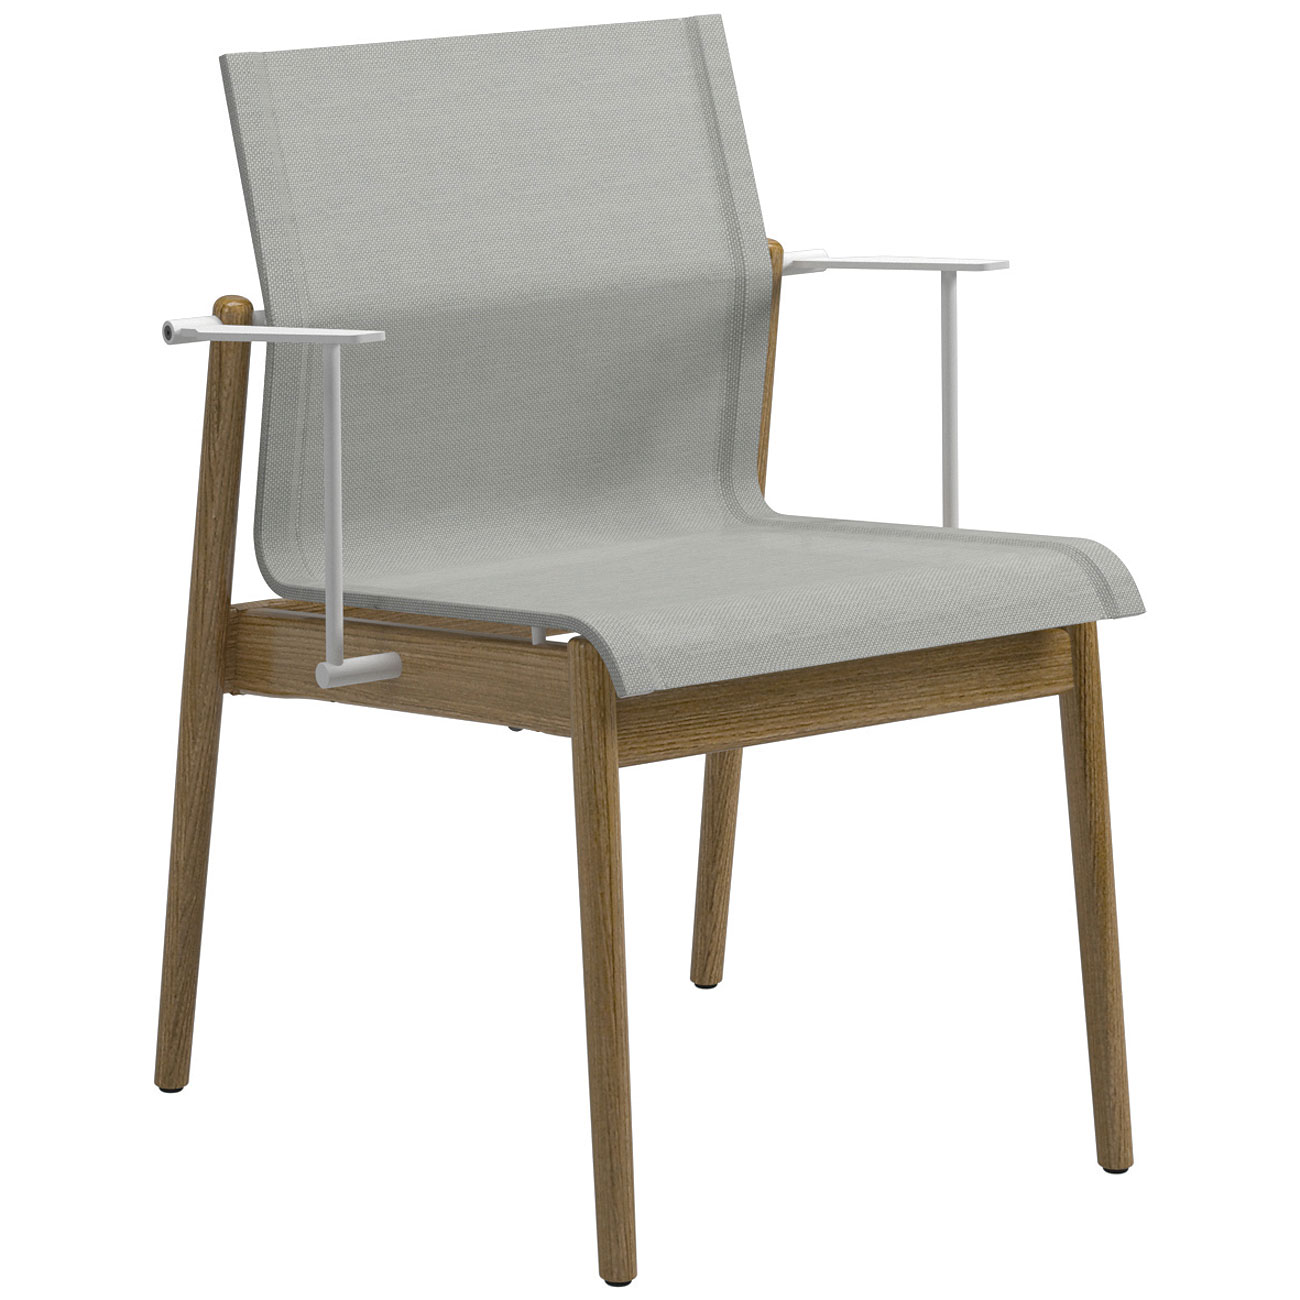 Oven Stabilizer Arm : Gloster sway teak stacking armchair white frame